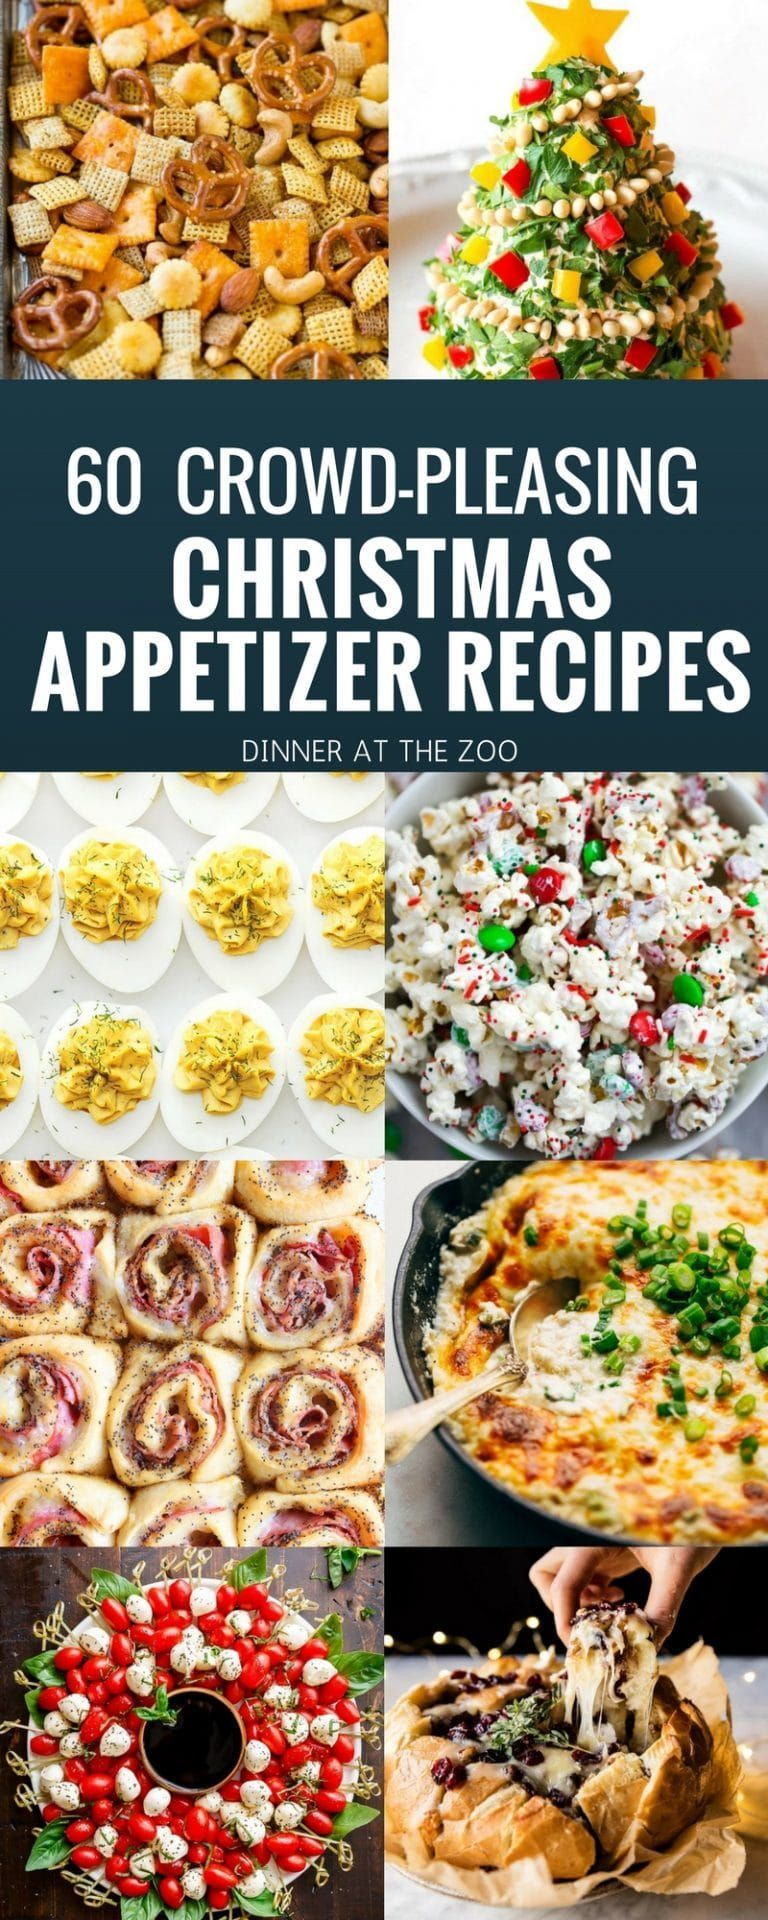 sixty of the most amazing christmas appetizer recipes everything from dips to hot appetizers to